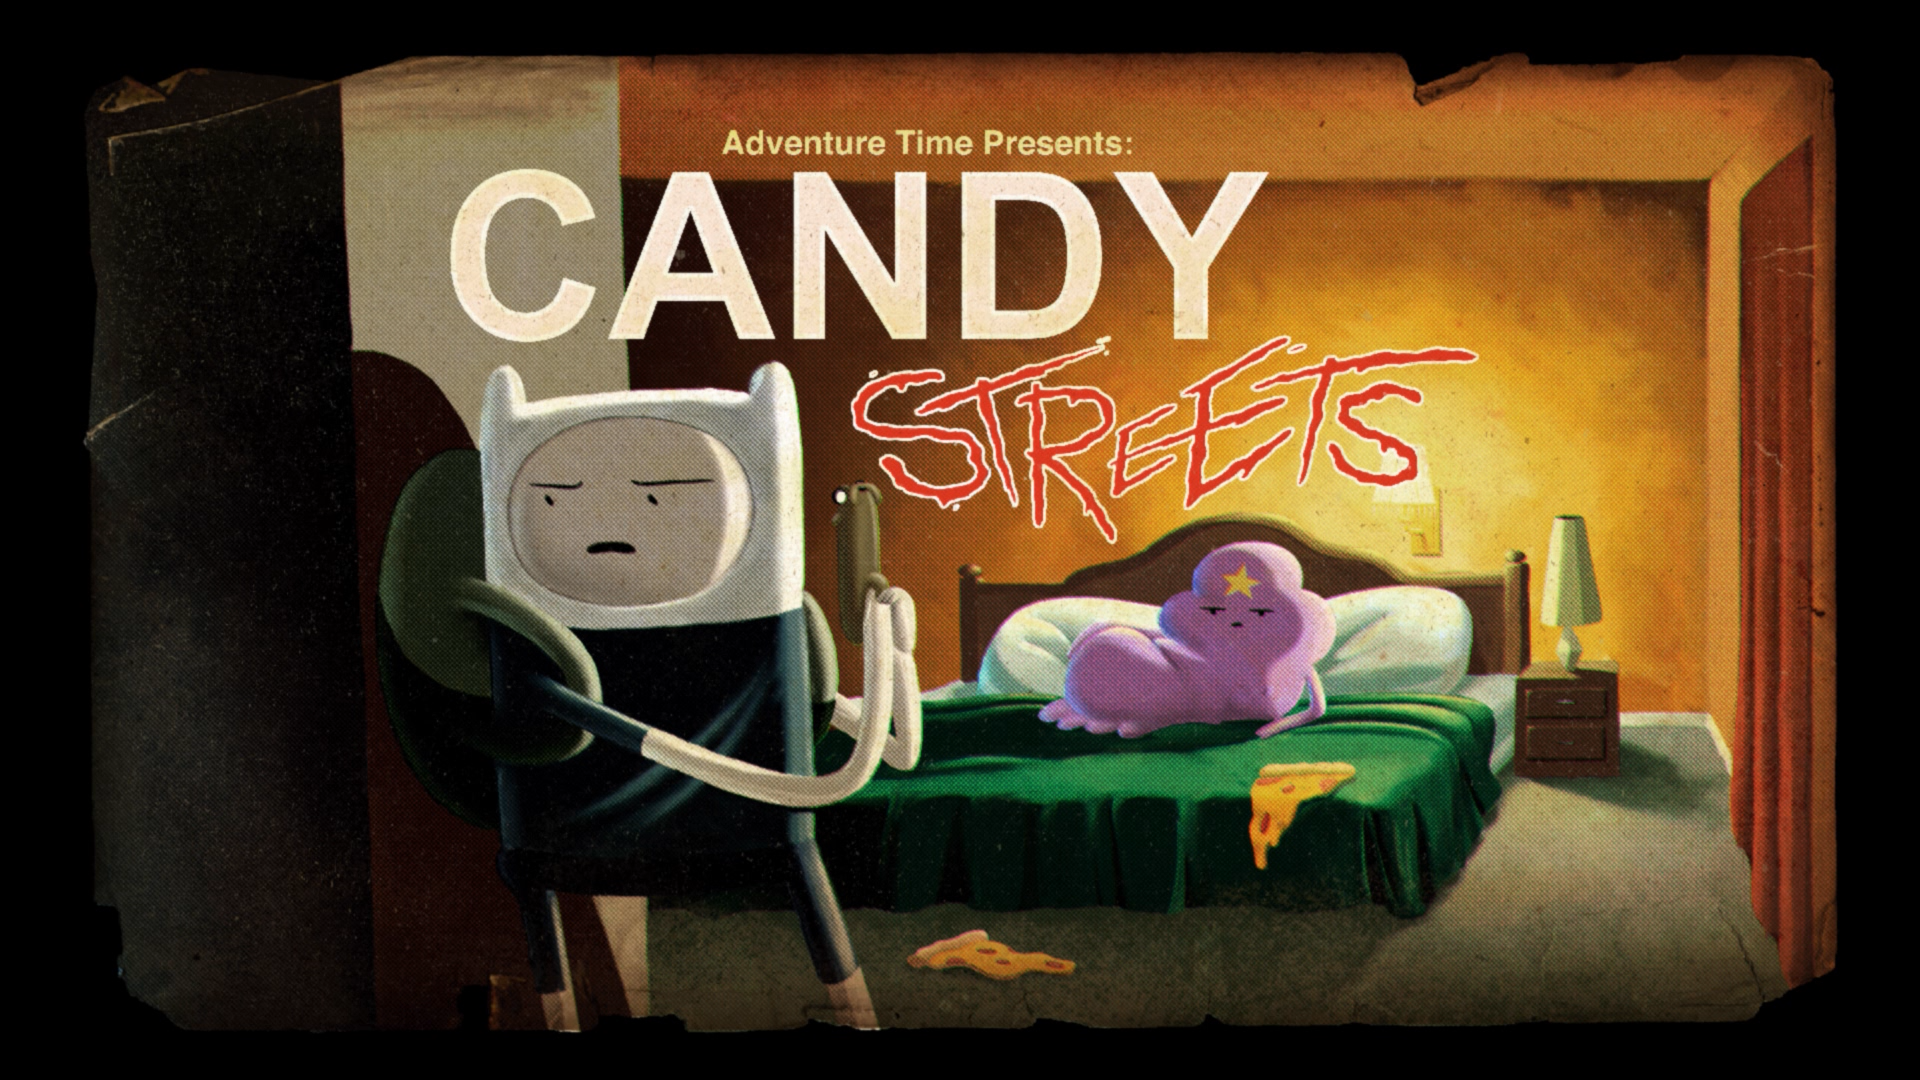 Candy Streets | Adventure Time Wiki | FANDOM powered by Wikia